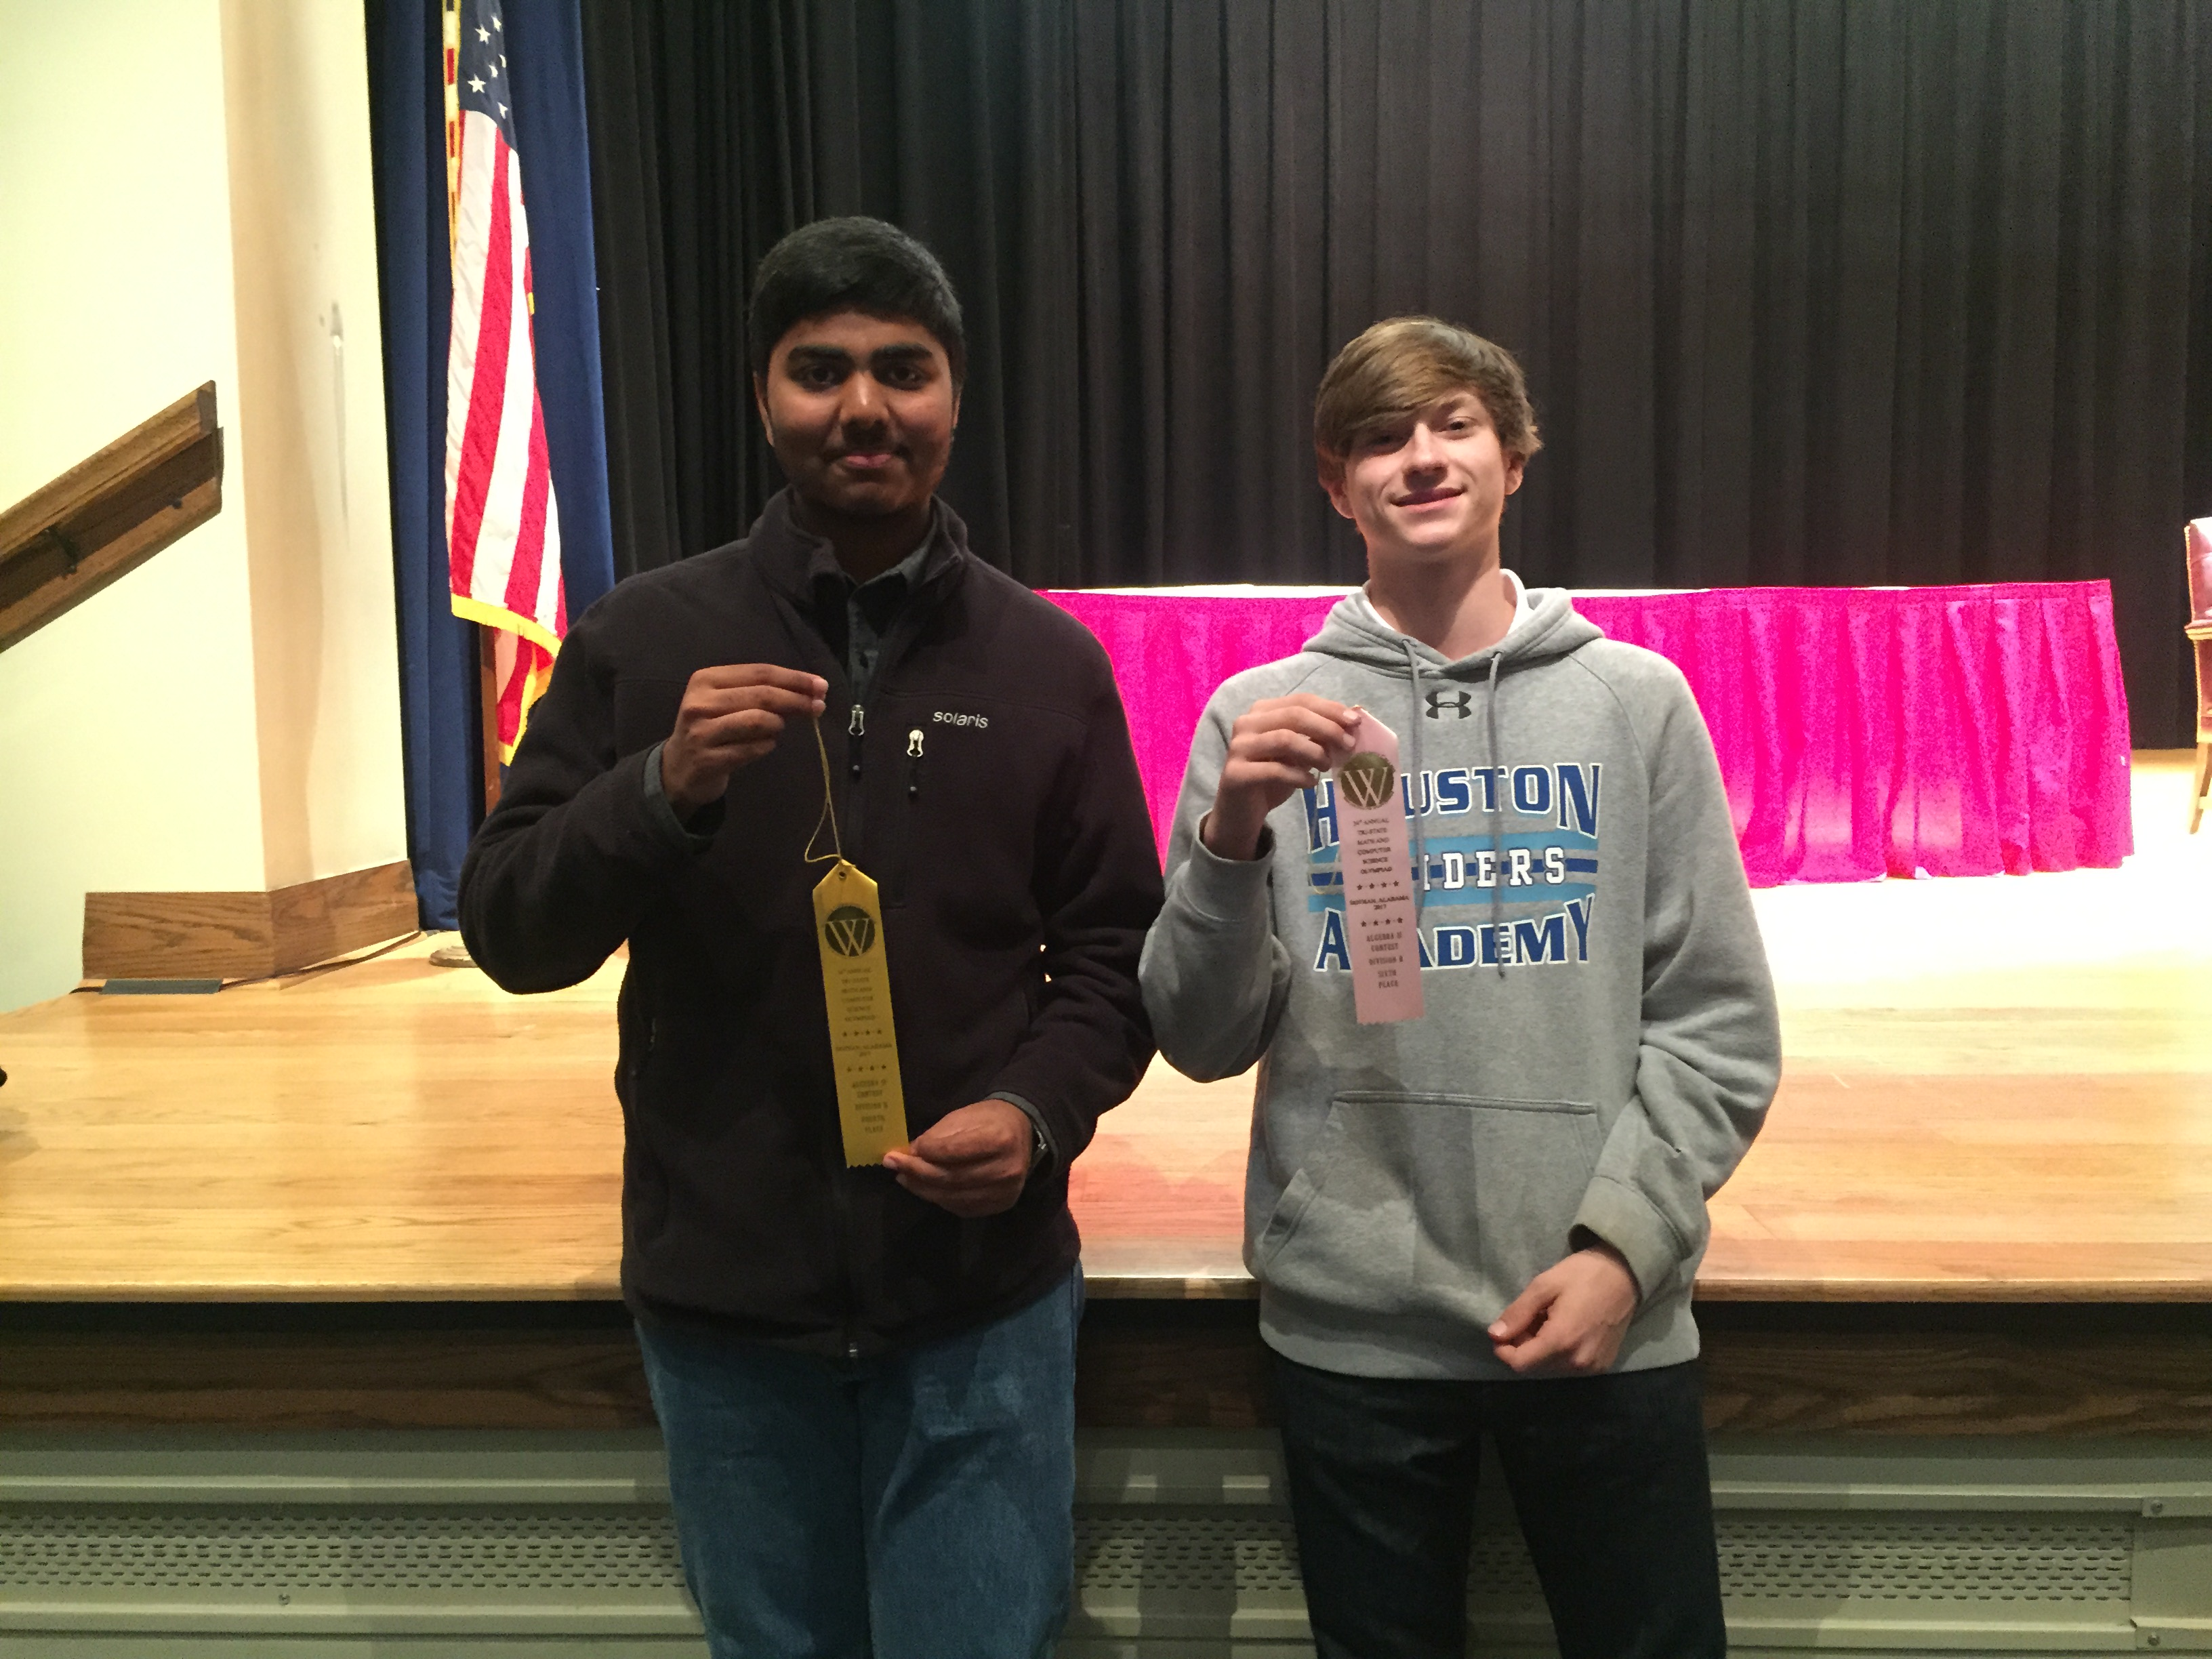 Math and Computer Science Olympiad | Houston Academy